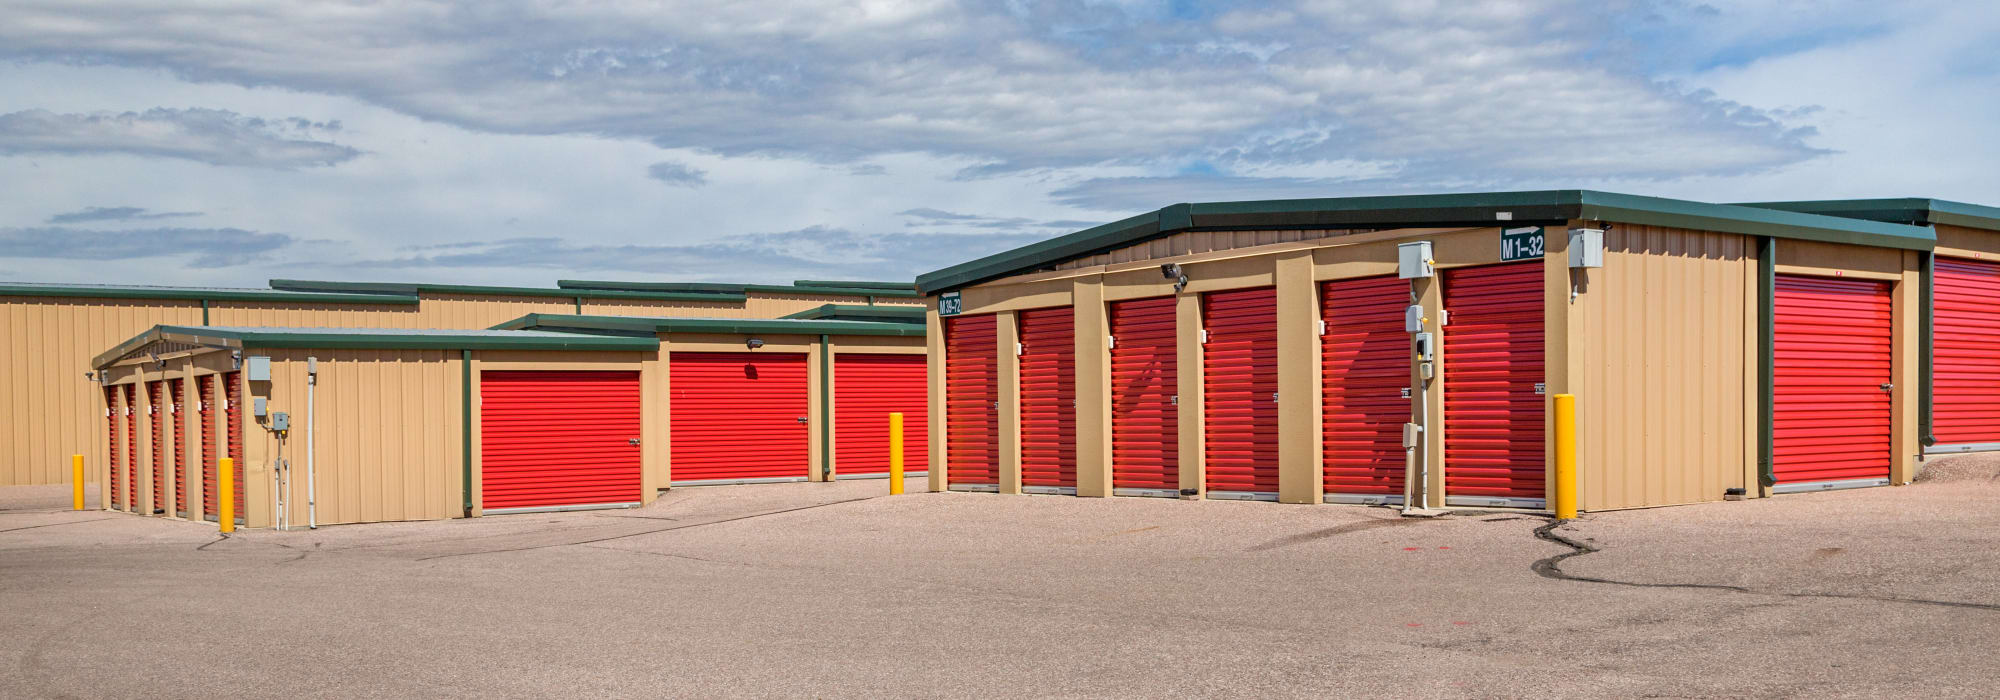 Self storage in Colorado Springs, Colorado